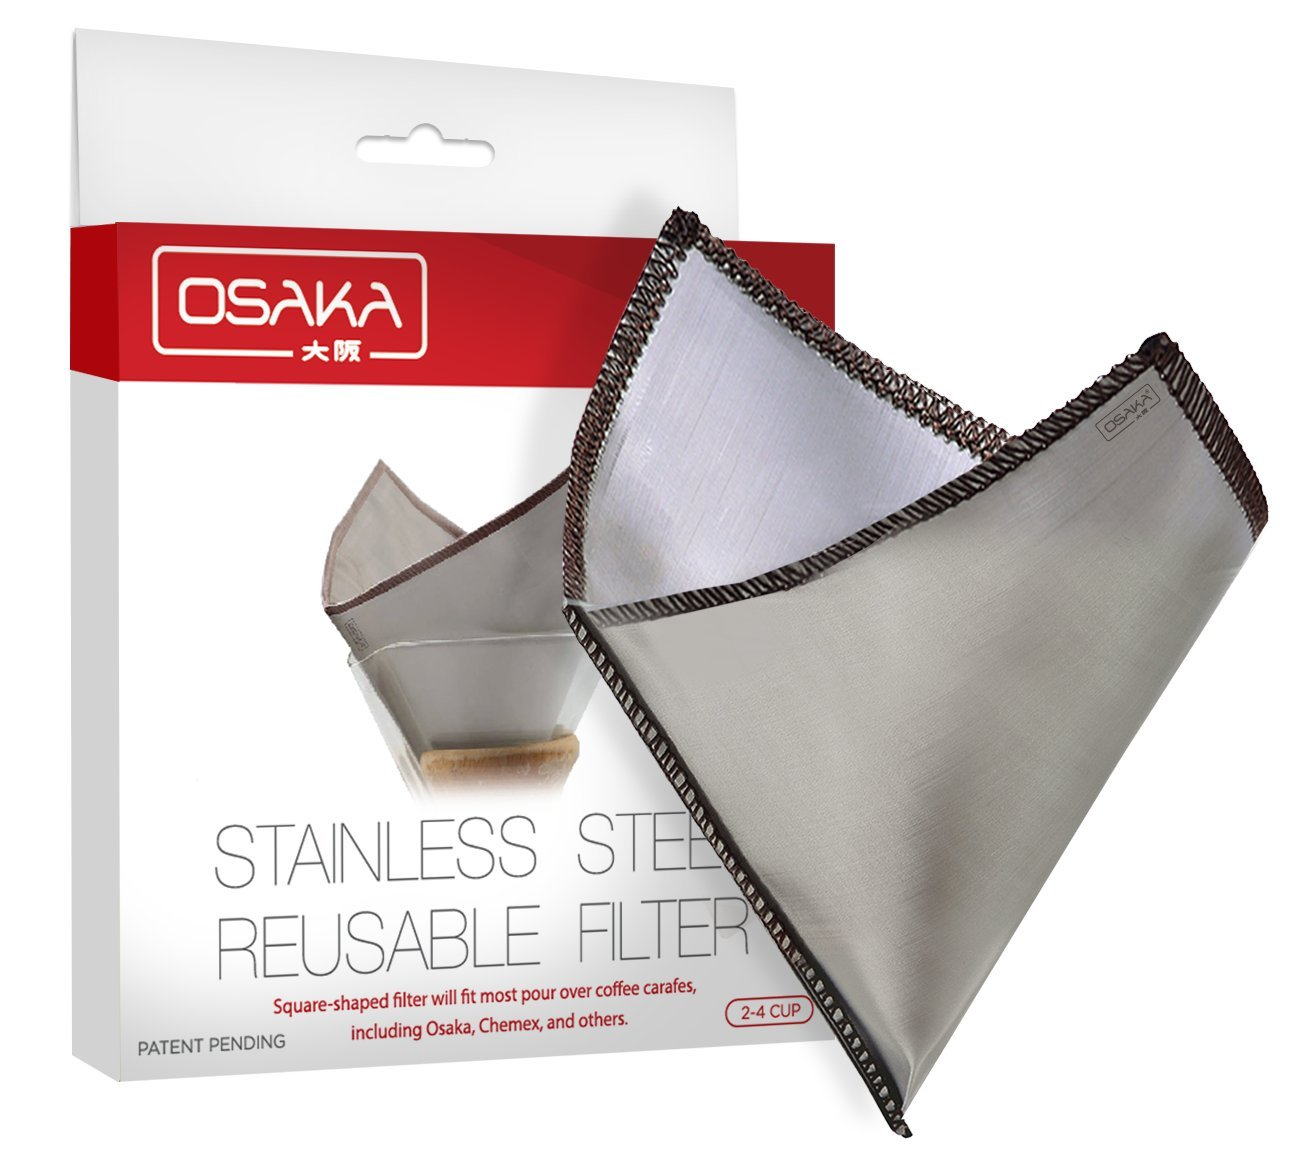 Osaka Square-Shaped Stainless Steel Mesh Reusable Filter for Pour Over Coffee – Fits Multiple Carafes such as Osaka, Chemex and Hario